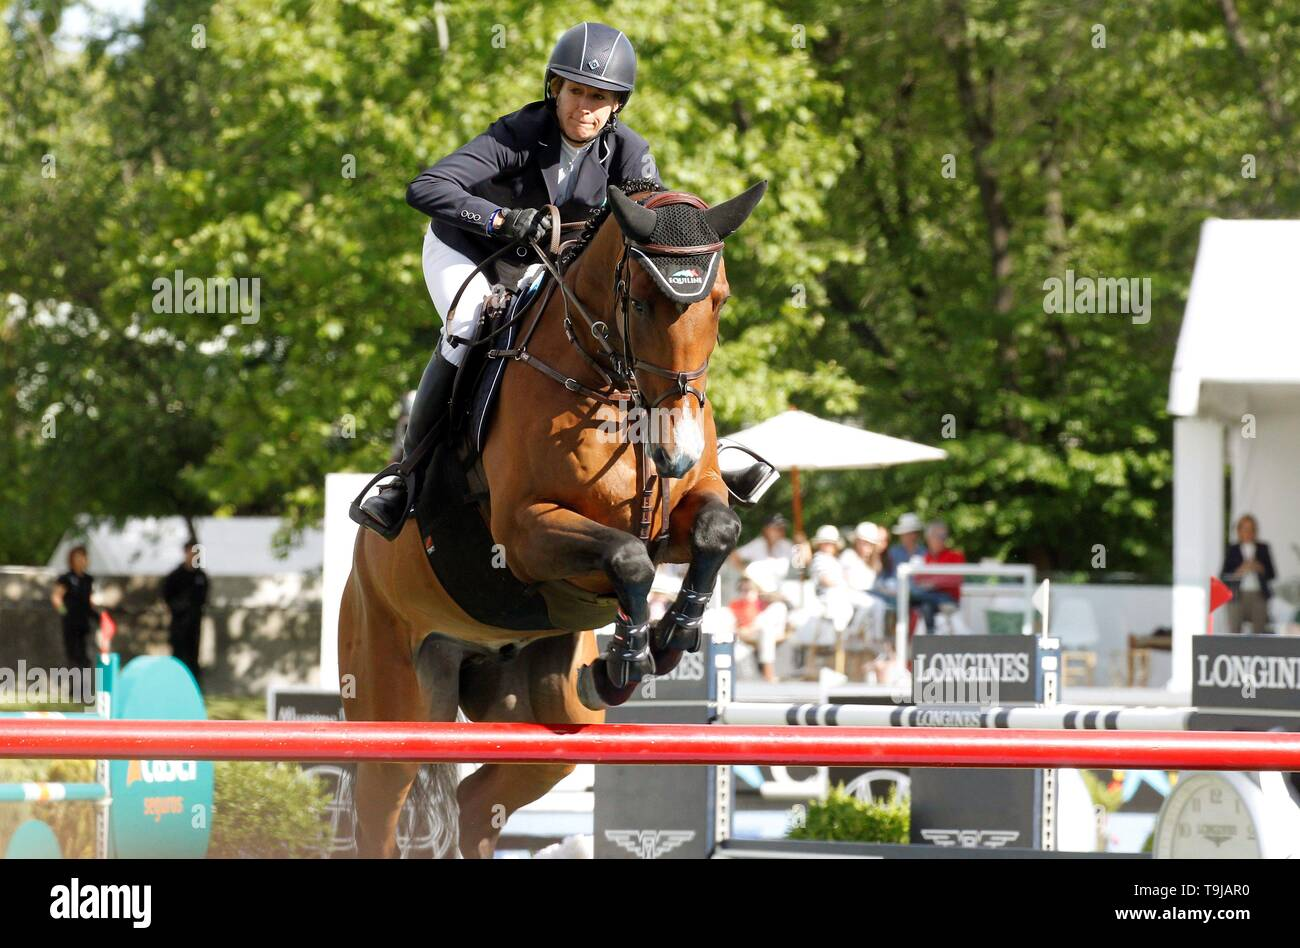 Madrid, Spain. 17th May, 2019. US rider Laura Kraut competes during the final day of the King's Cup trophy trial at the Campo Villa in Madrid, Spain, 19 May 2019. Credit: Víctor Lerena/EFE/Alamy Live News - Stock Image